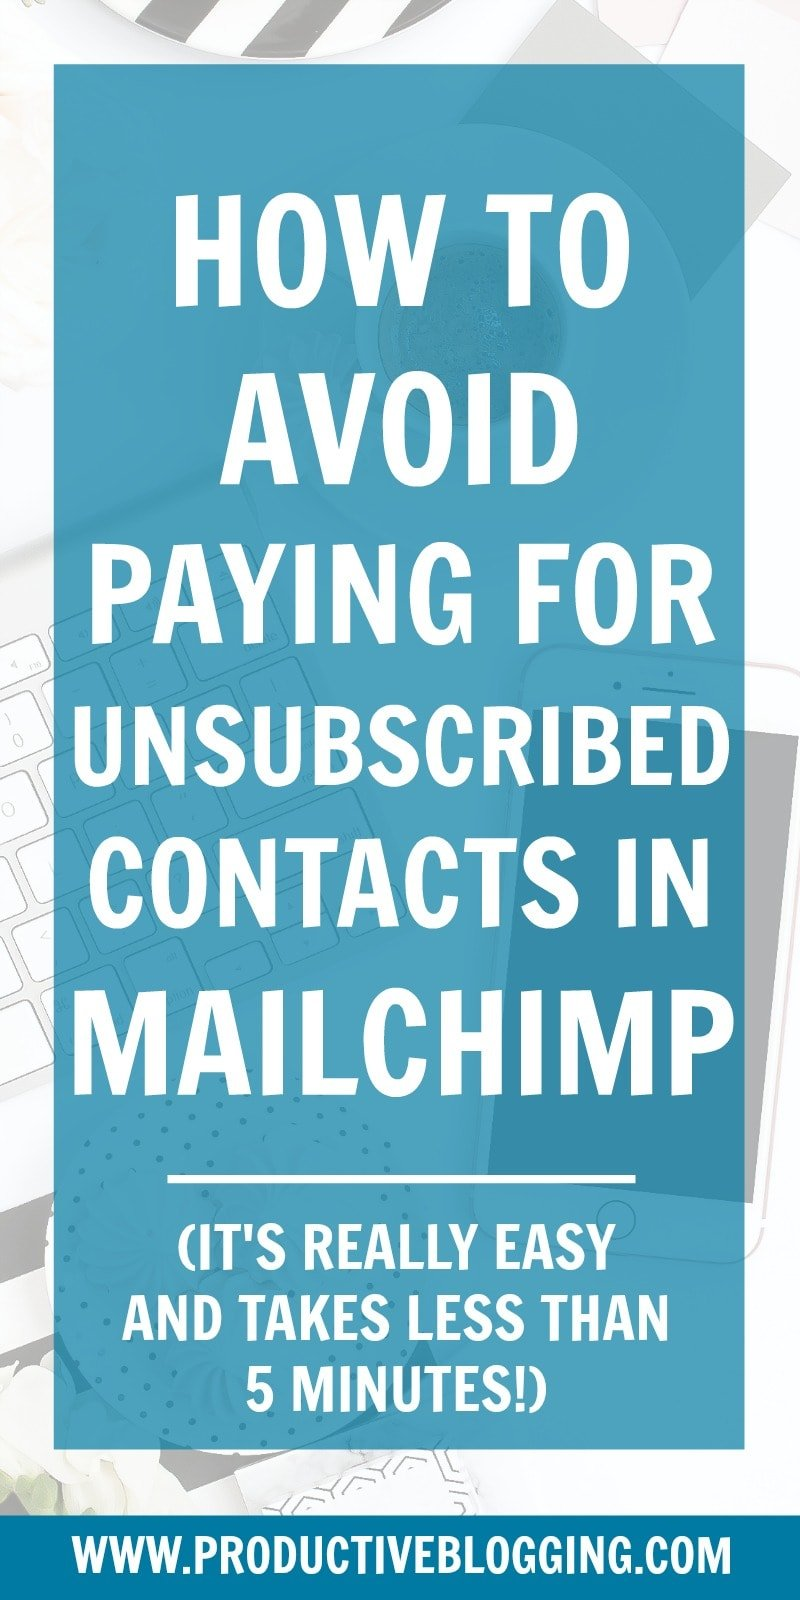 A recent change to MailChimp means that even when someone unsubscribes from your list, you can still end up paying for them. Here's how to avoid paying for unsubscribed contacts in Mailchimp… #mailchimp #mailchimpunsubscribers #mailchimpsubscribers #mailchimpaudience #subscribers #unsubscribers #unsubscribedcontacts #emailmarketing #convertkit #emaillist #blogging #blogger #productiveblogging